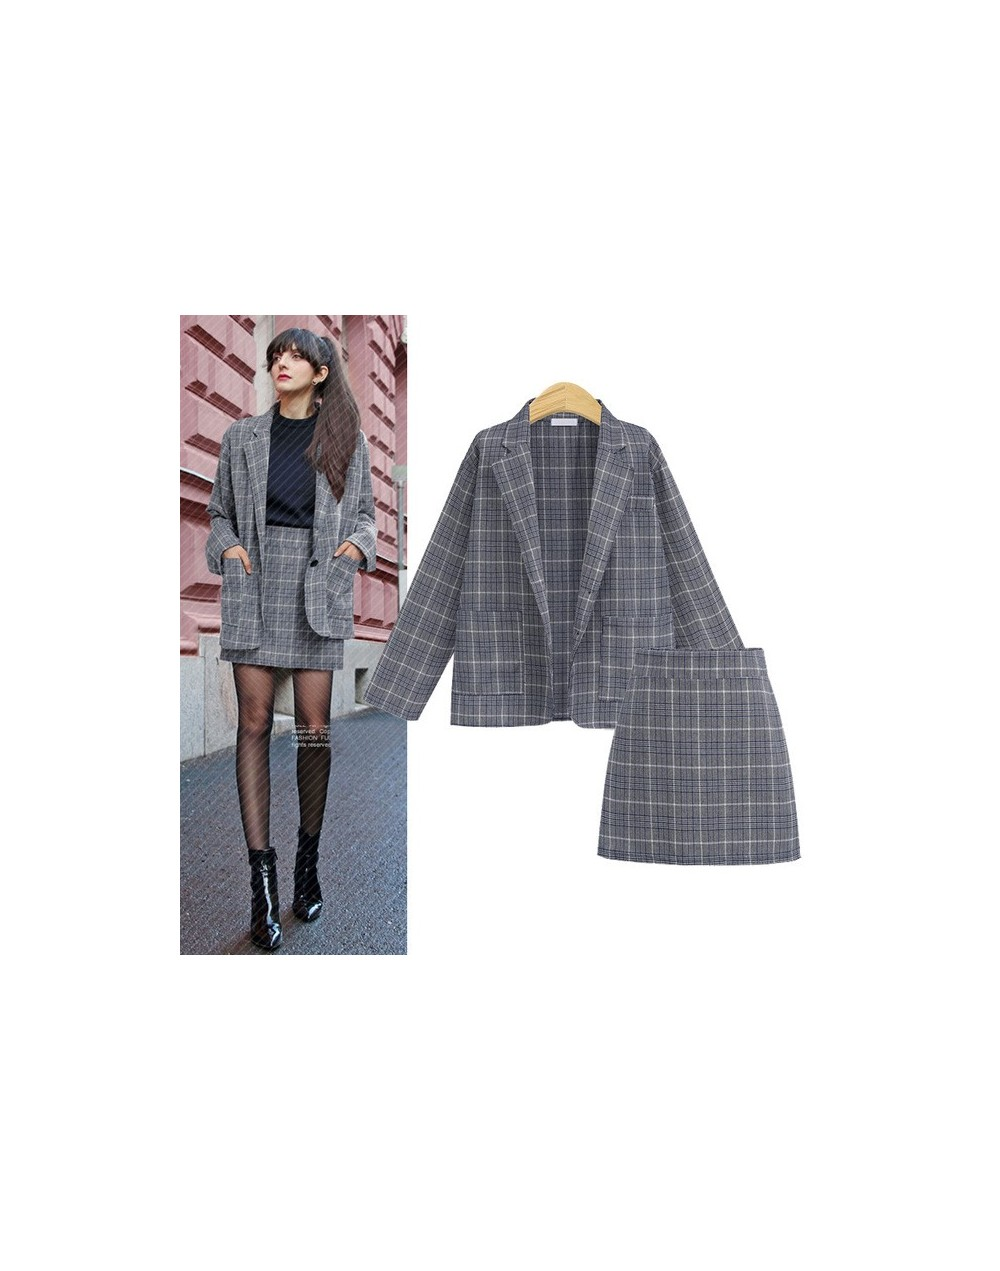 Women Office Uniforms 2019 New Plus Size Women's Suit Skirt Suit Long Sleeve Clothing Women Work Outfits Complete Office Out...